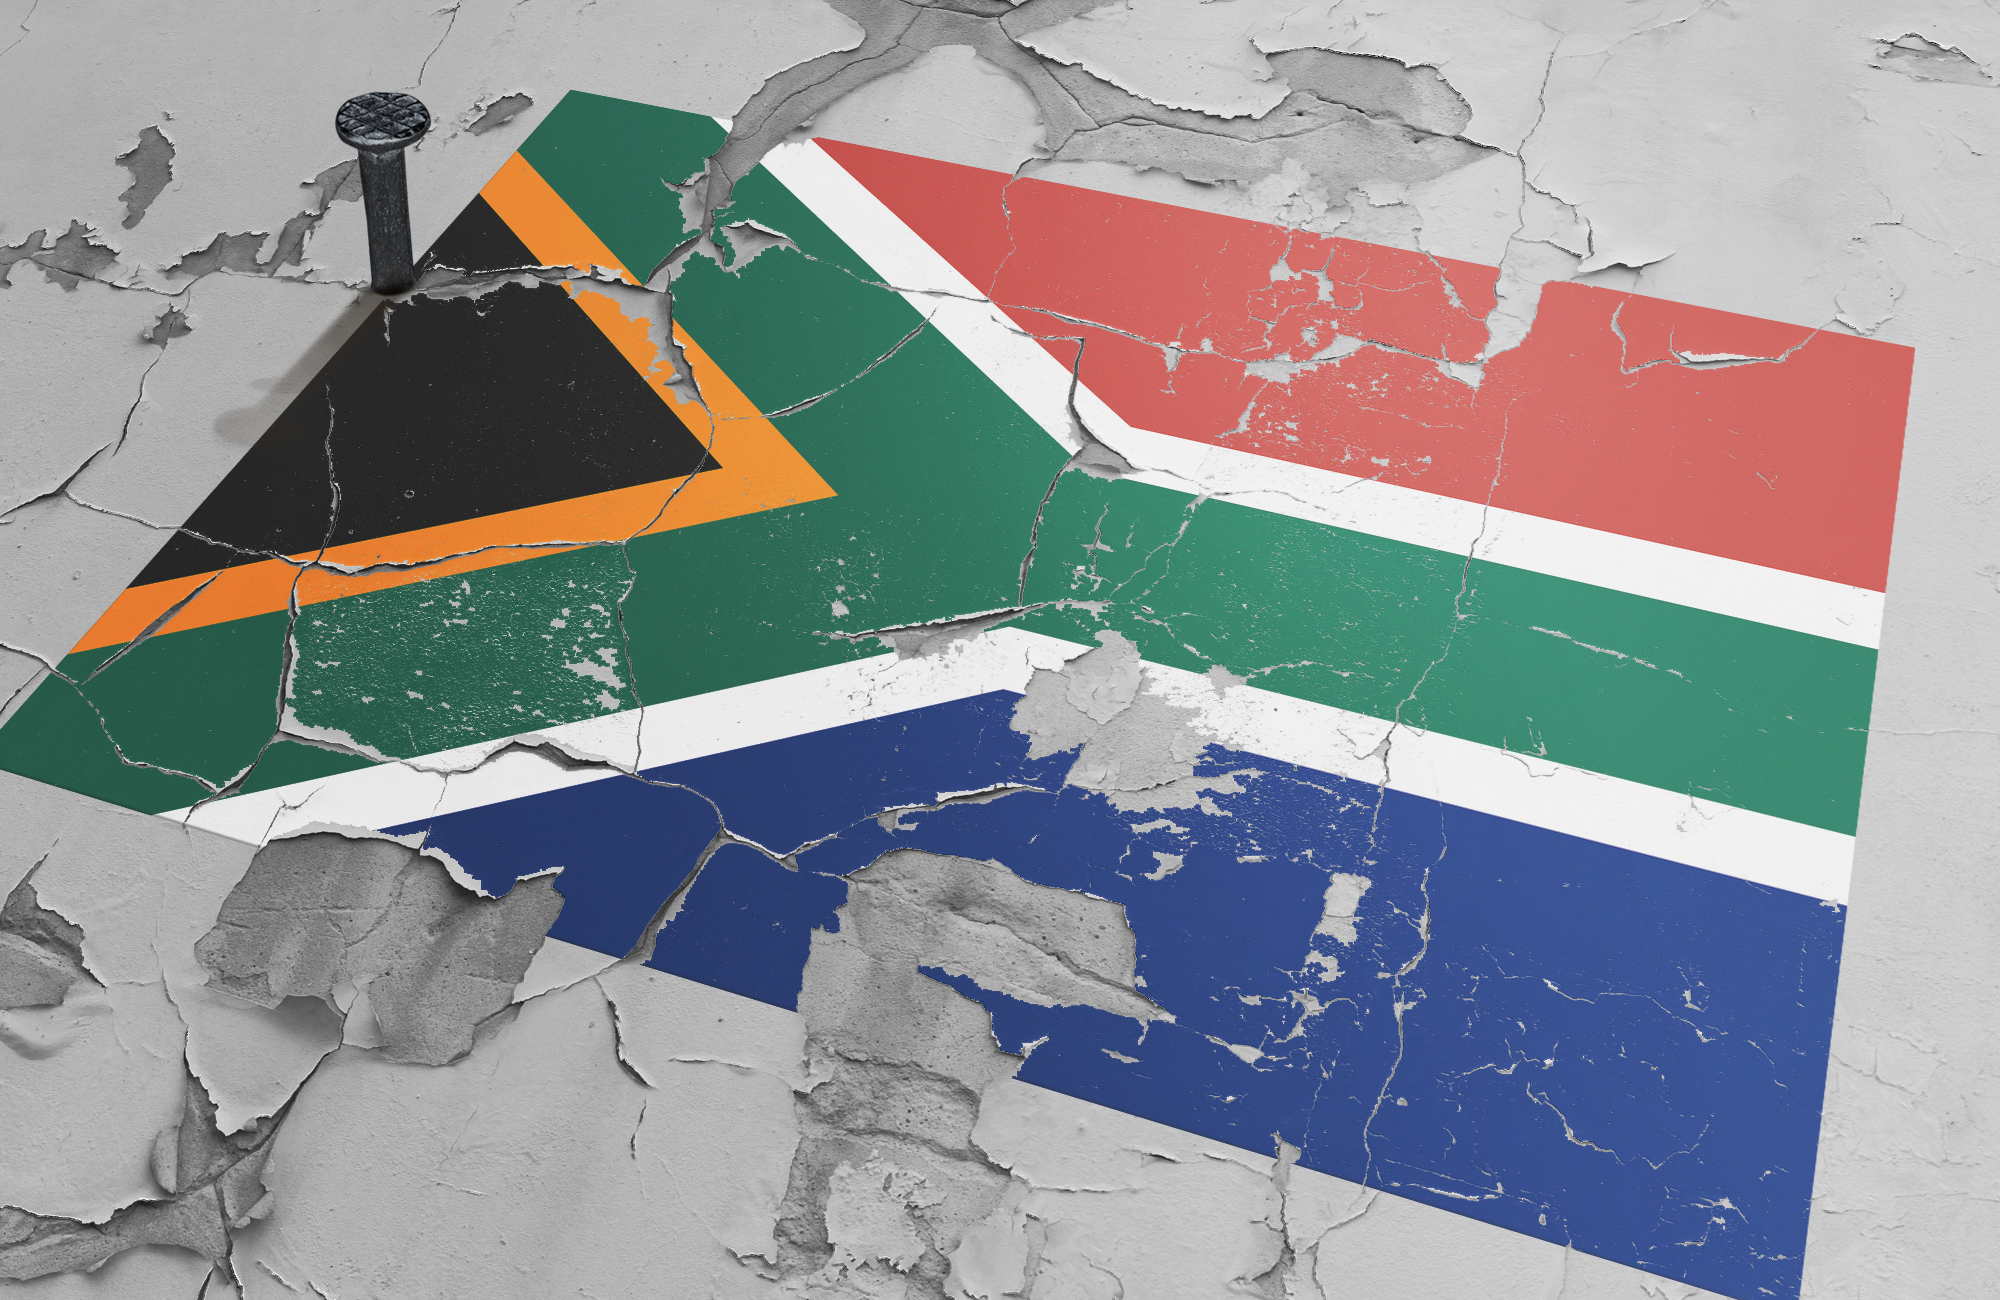 According to South Africans, what [still] divides us?